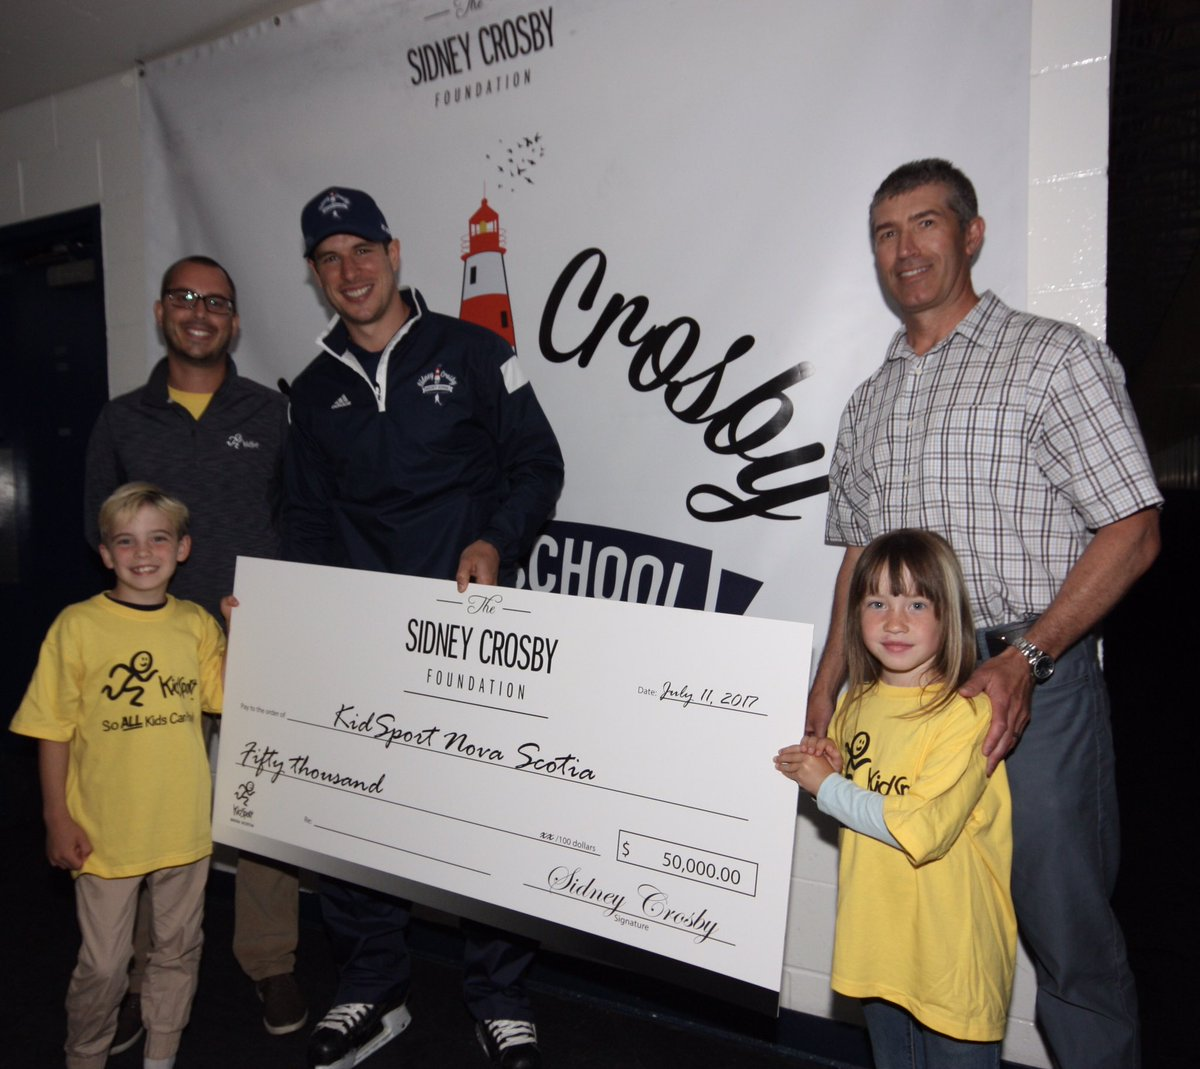 The Sidney Crosby Foundation is proud to support @KidSport_NS with a $50,000 donation! https://t.co/nnho8GLx9C